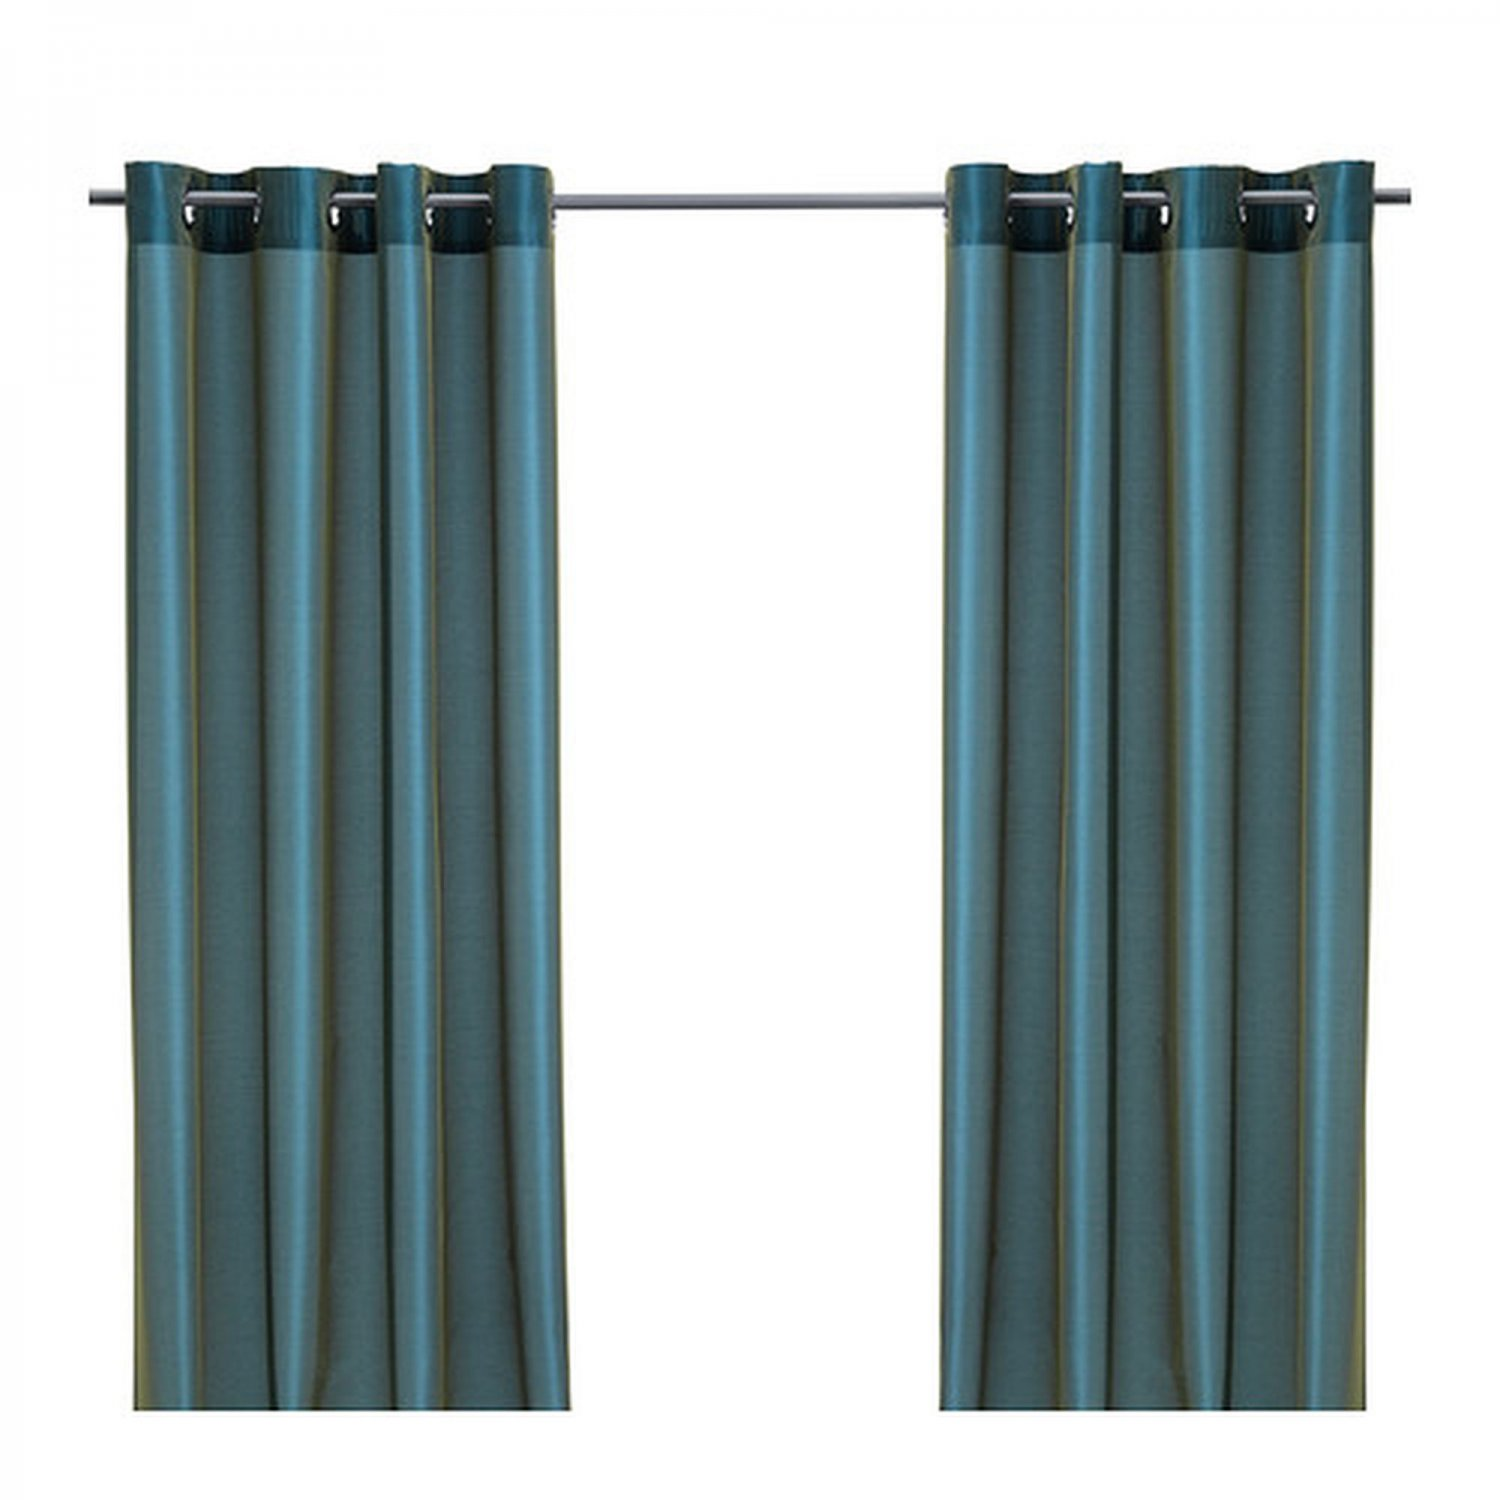 ikea parlbuske curtains green blue drapes 98 p rlbuske. Black Bedroom Furniture Sets. Home Design Ideas